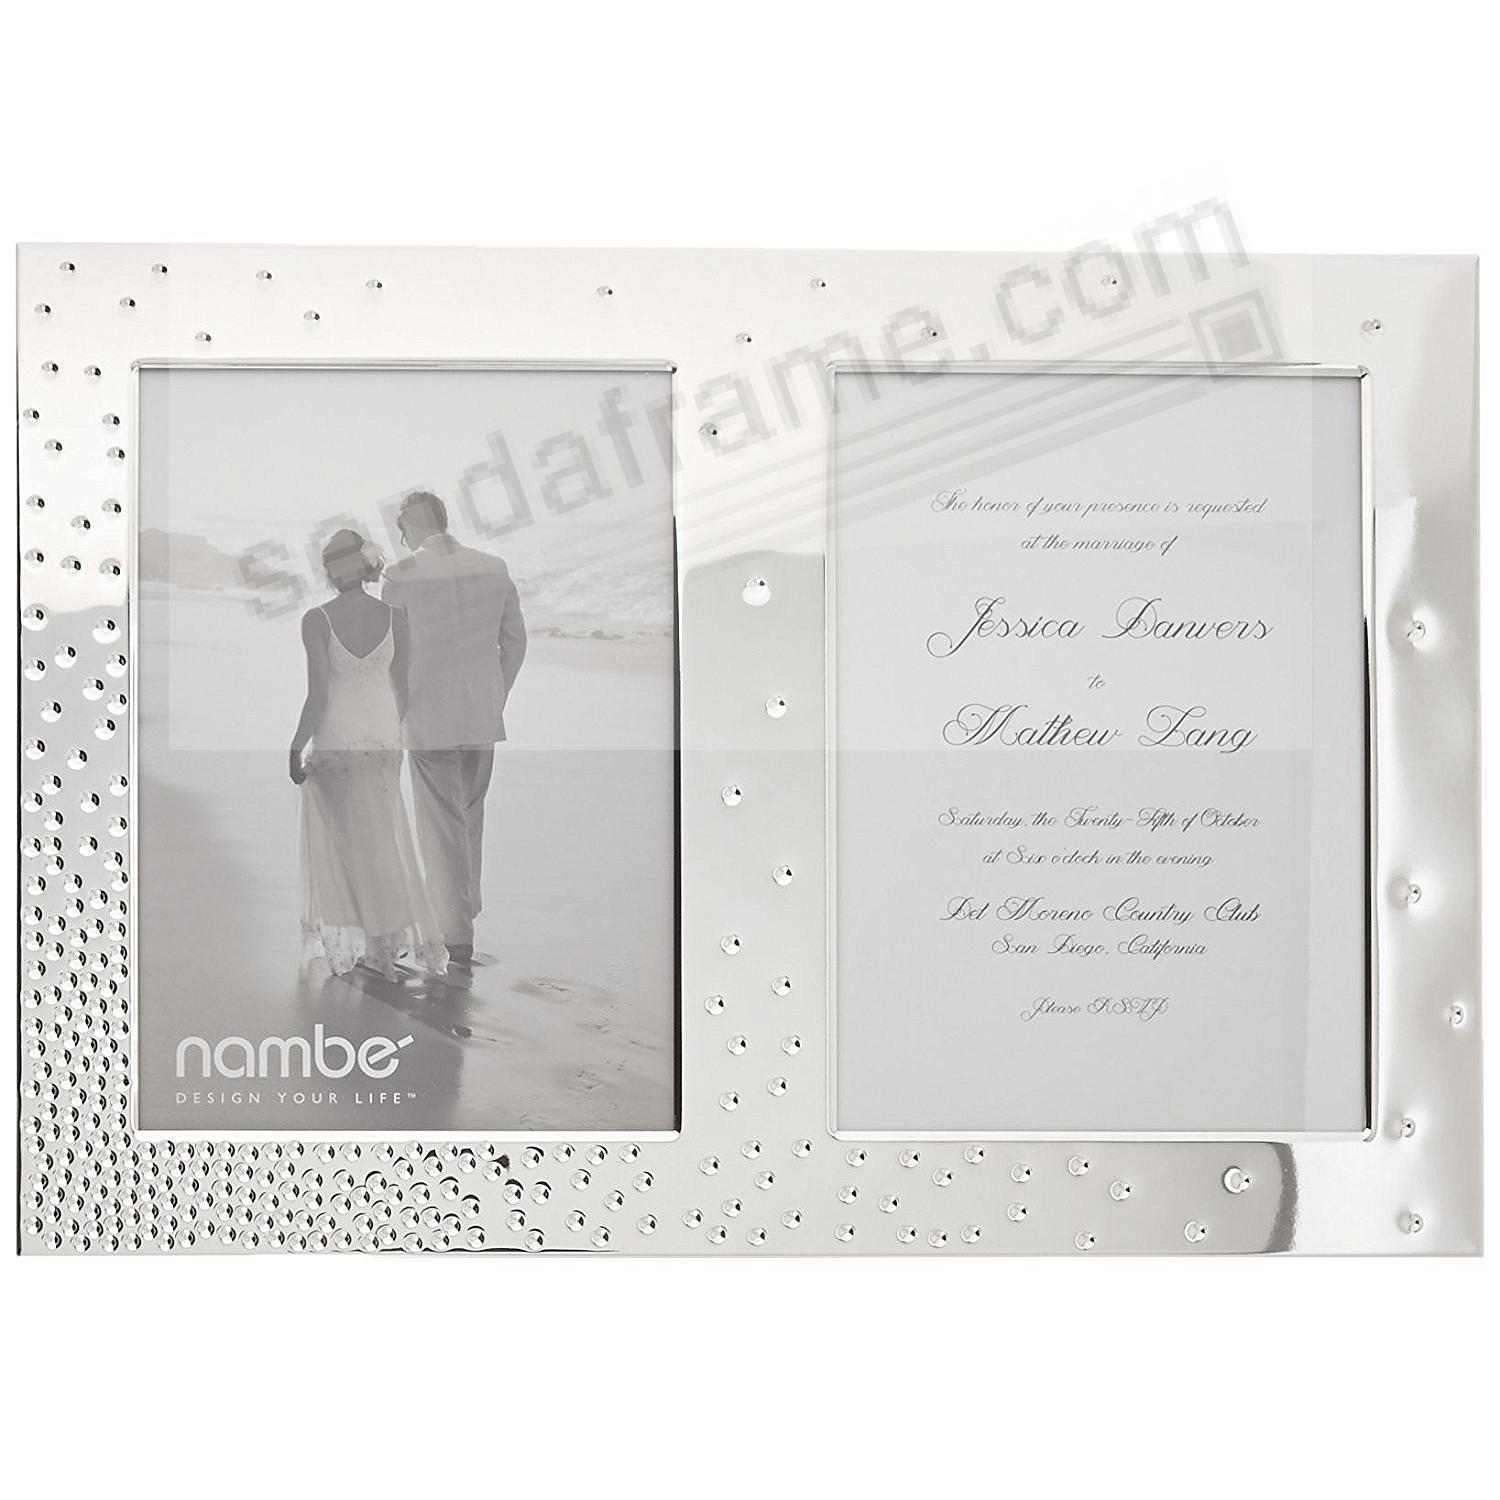 The New DAZZLE modern design INVITATION DUO 5x7 frame by Nambe'®